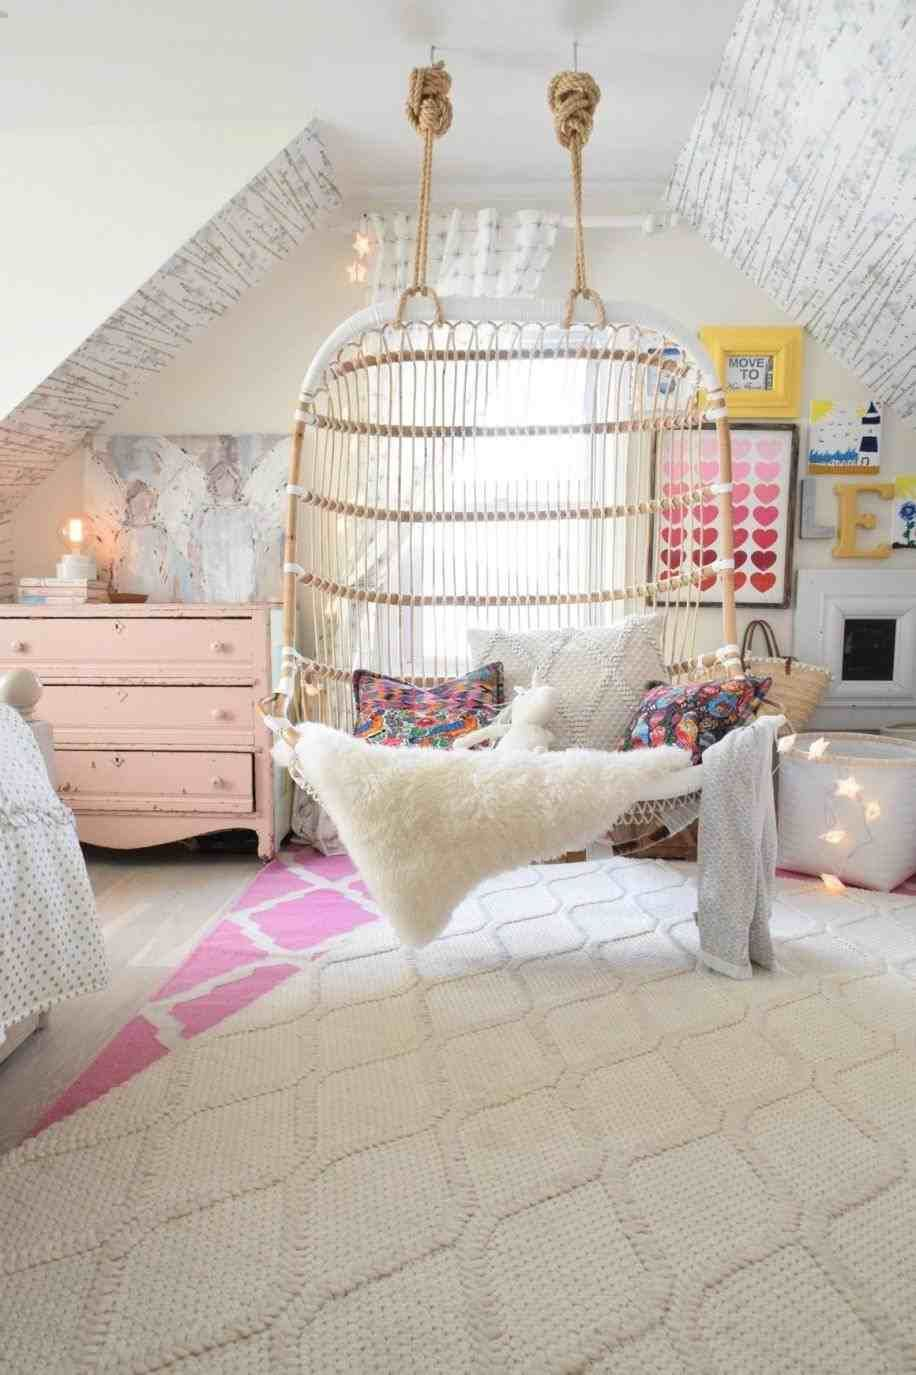 25 Top View Post Attic Bedroom Ideas For Teenage Girls Visit Homelivings Decor Ideas Girl Bedroom Designs Teenage Girl Bedroom Designs Kid Room Decor